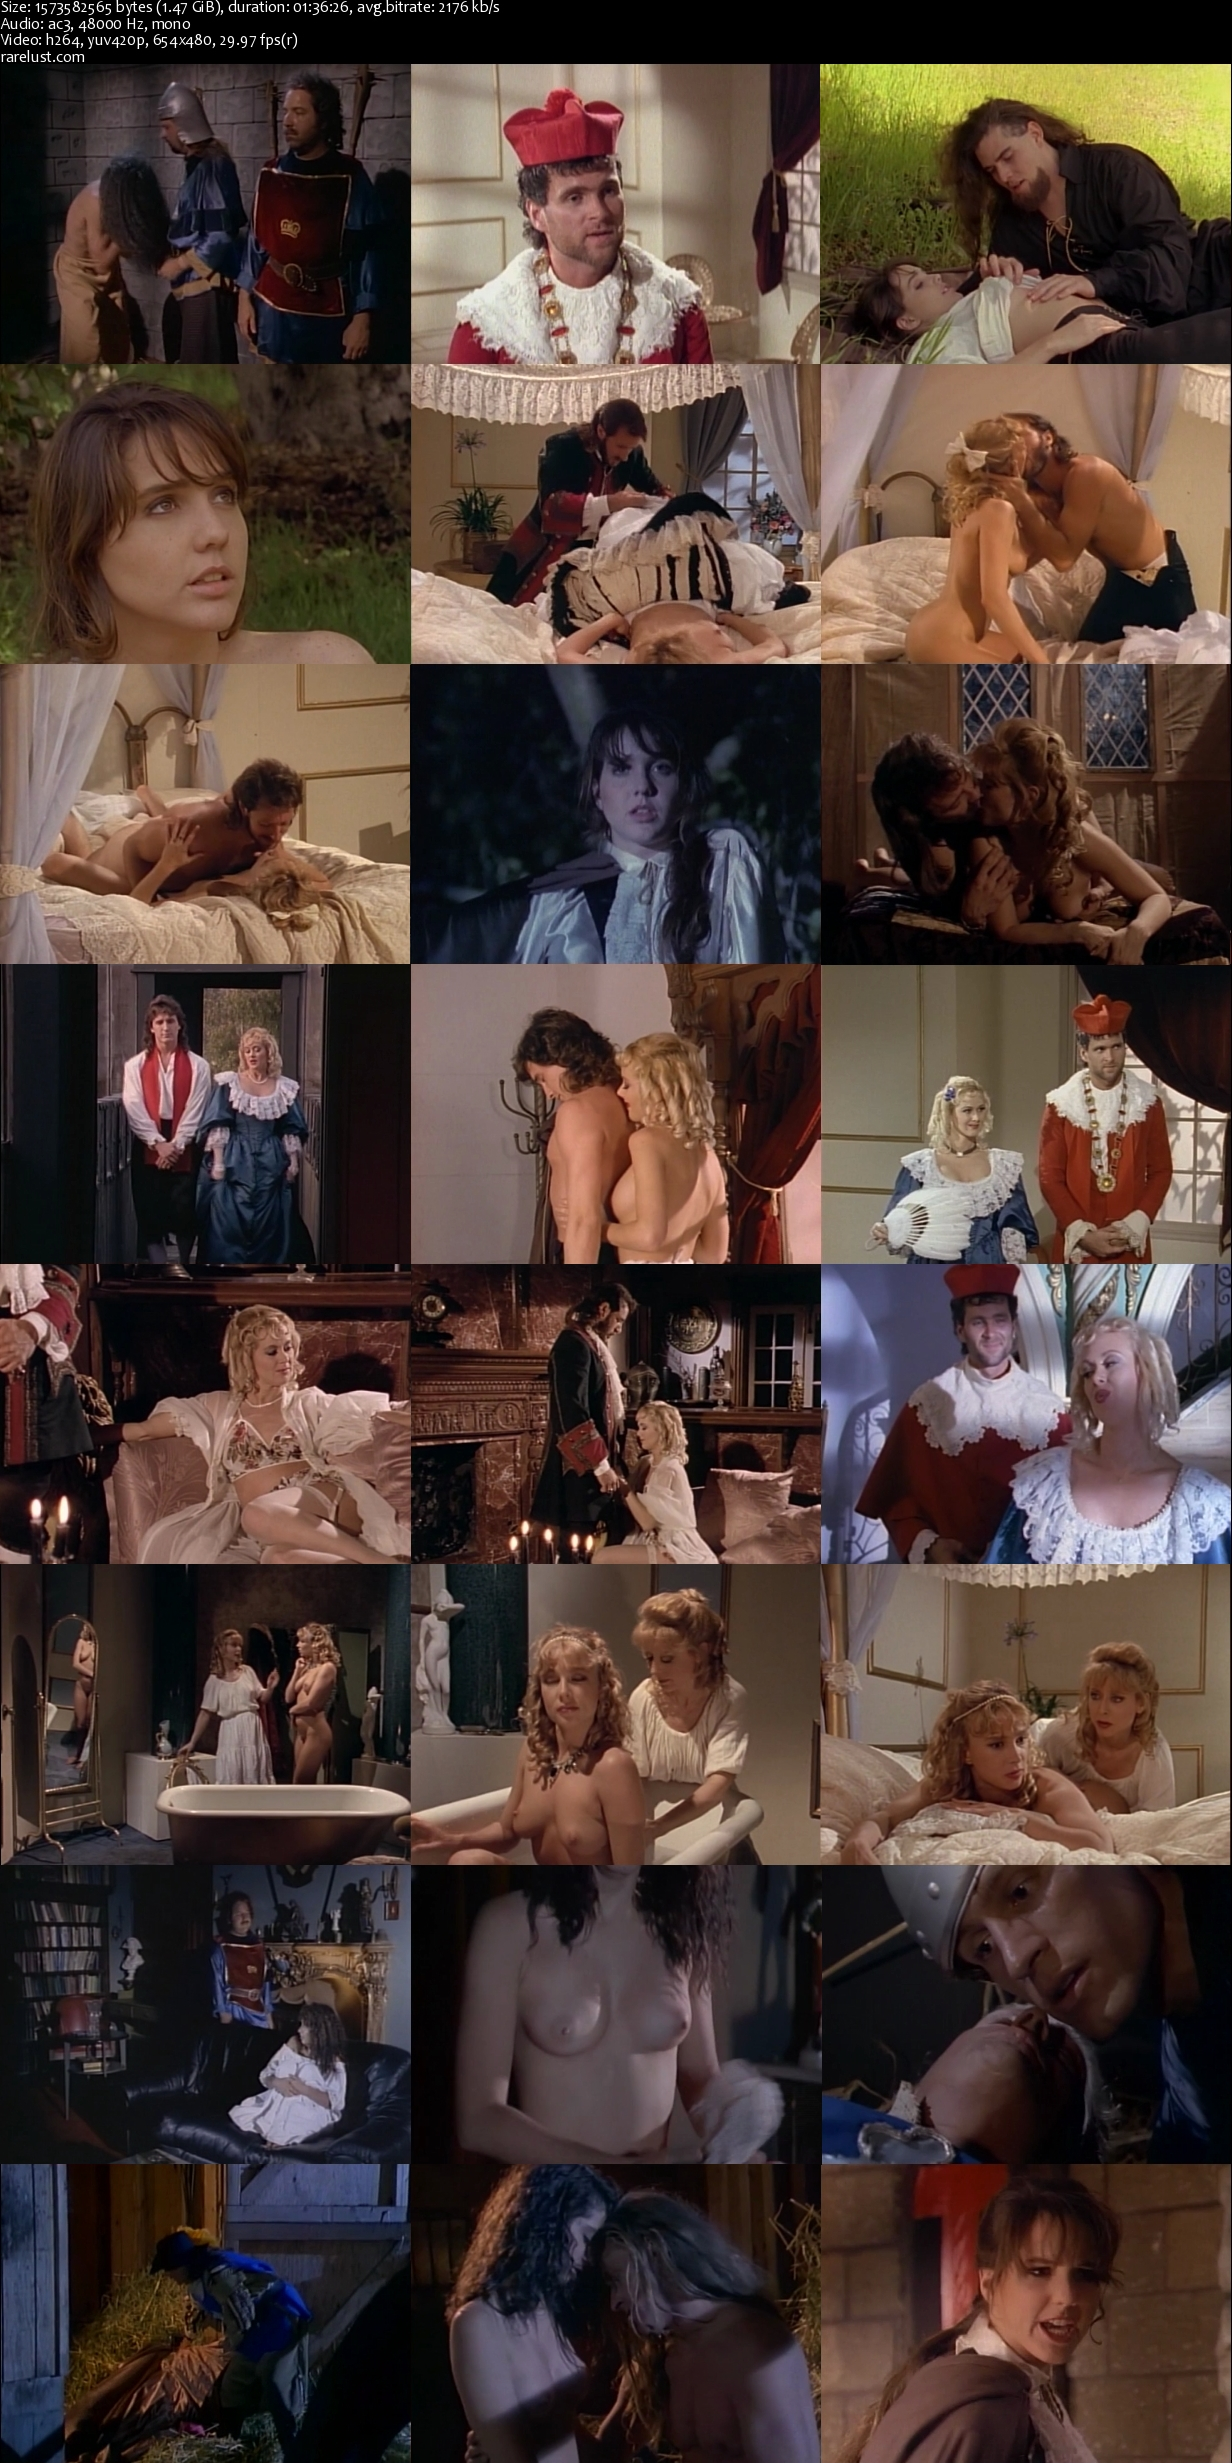 the_erotic_adventures_of_the_three_musketeers_1992